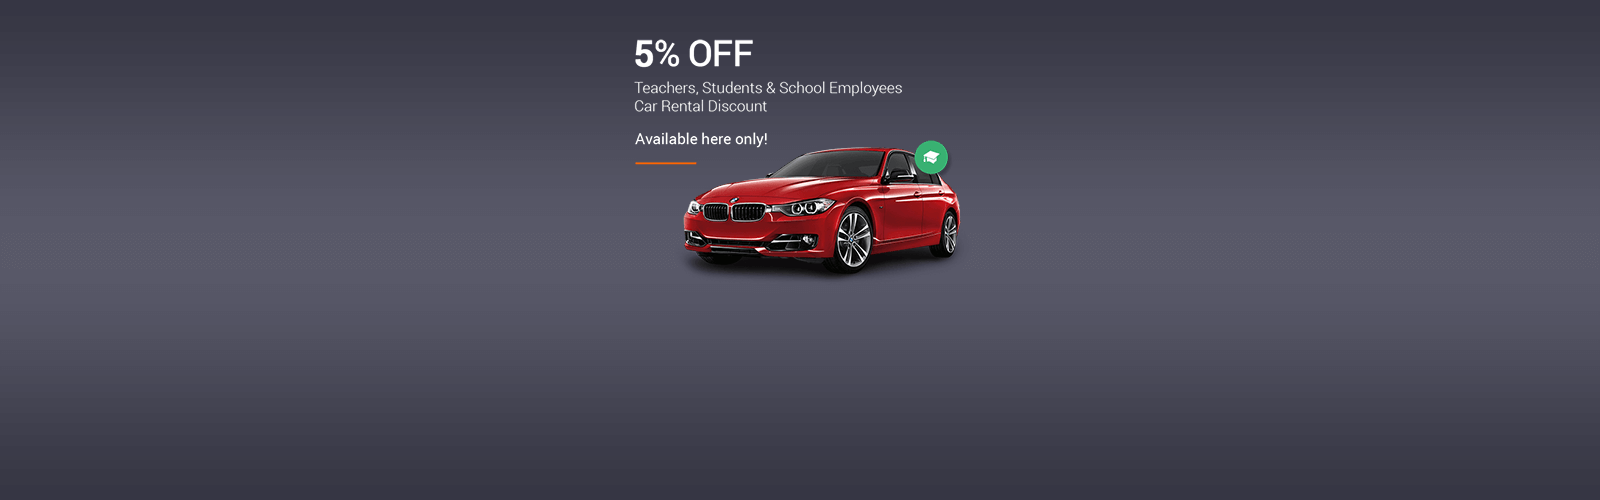 Teacher & Students Car Rental Coupons